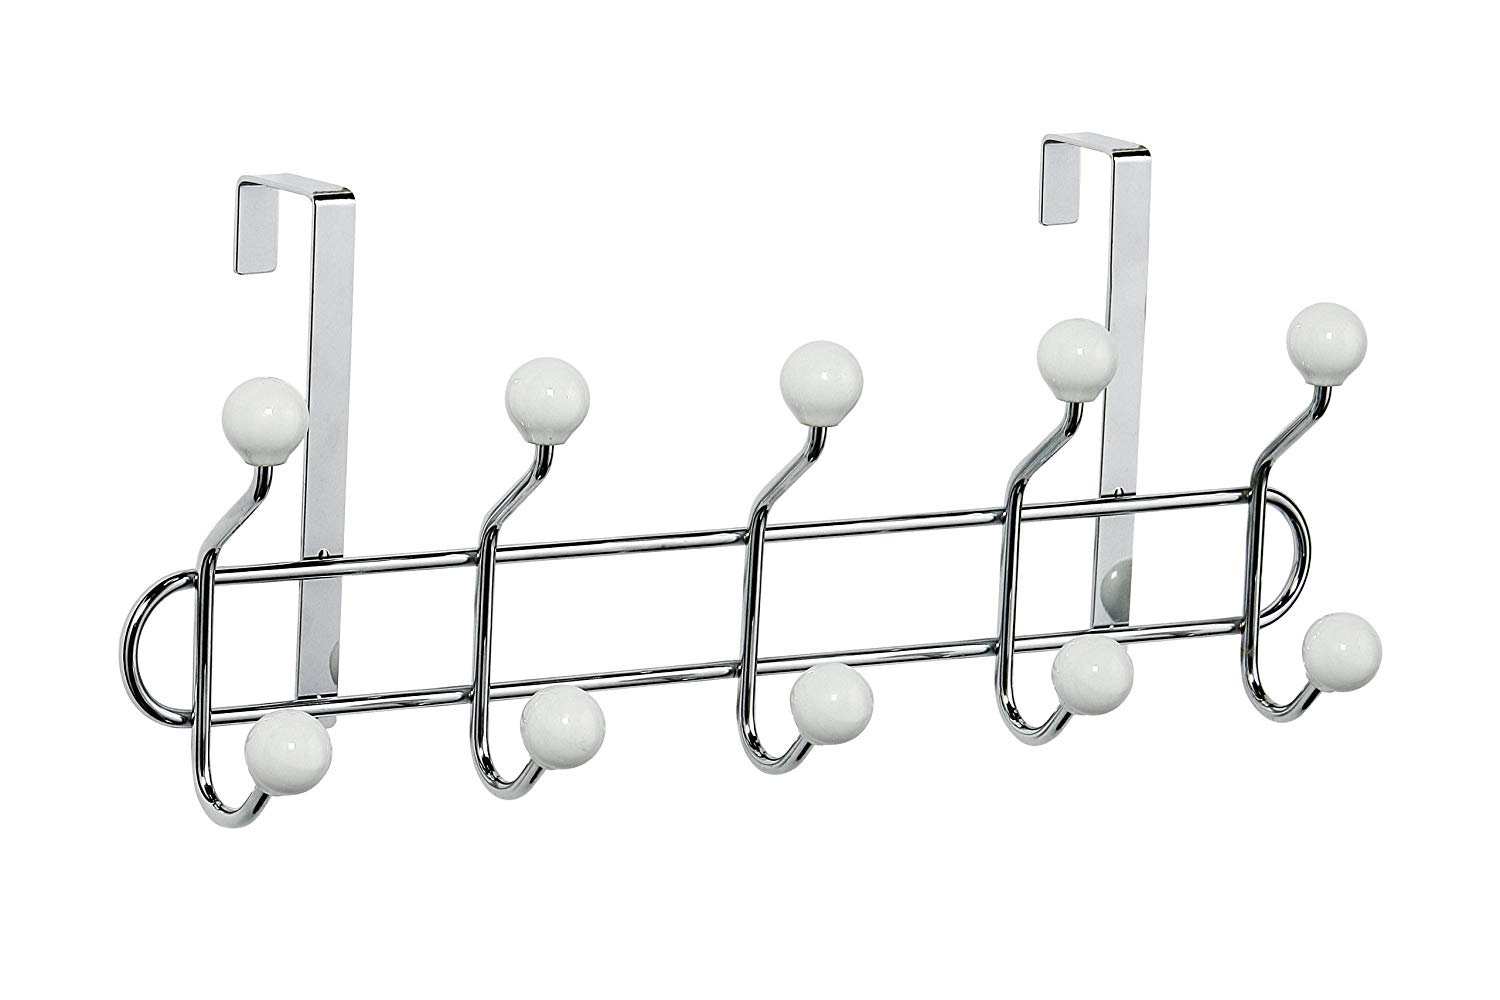 10 Hook Over Door Hanger with White Ceramic Balls, Chrome